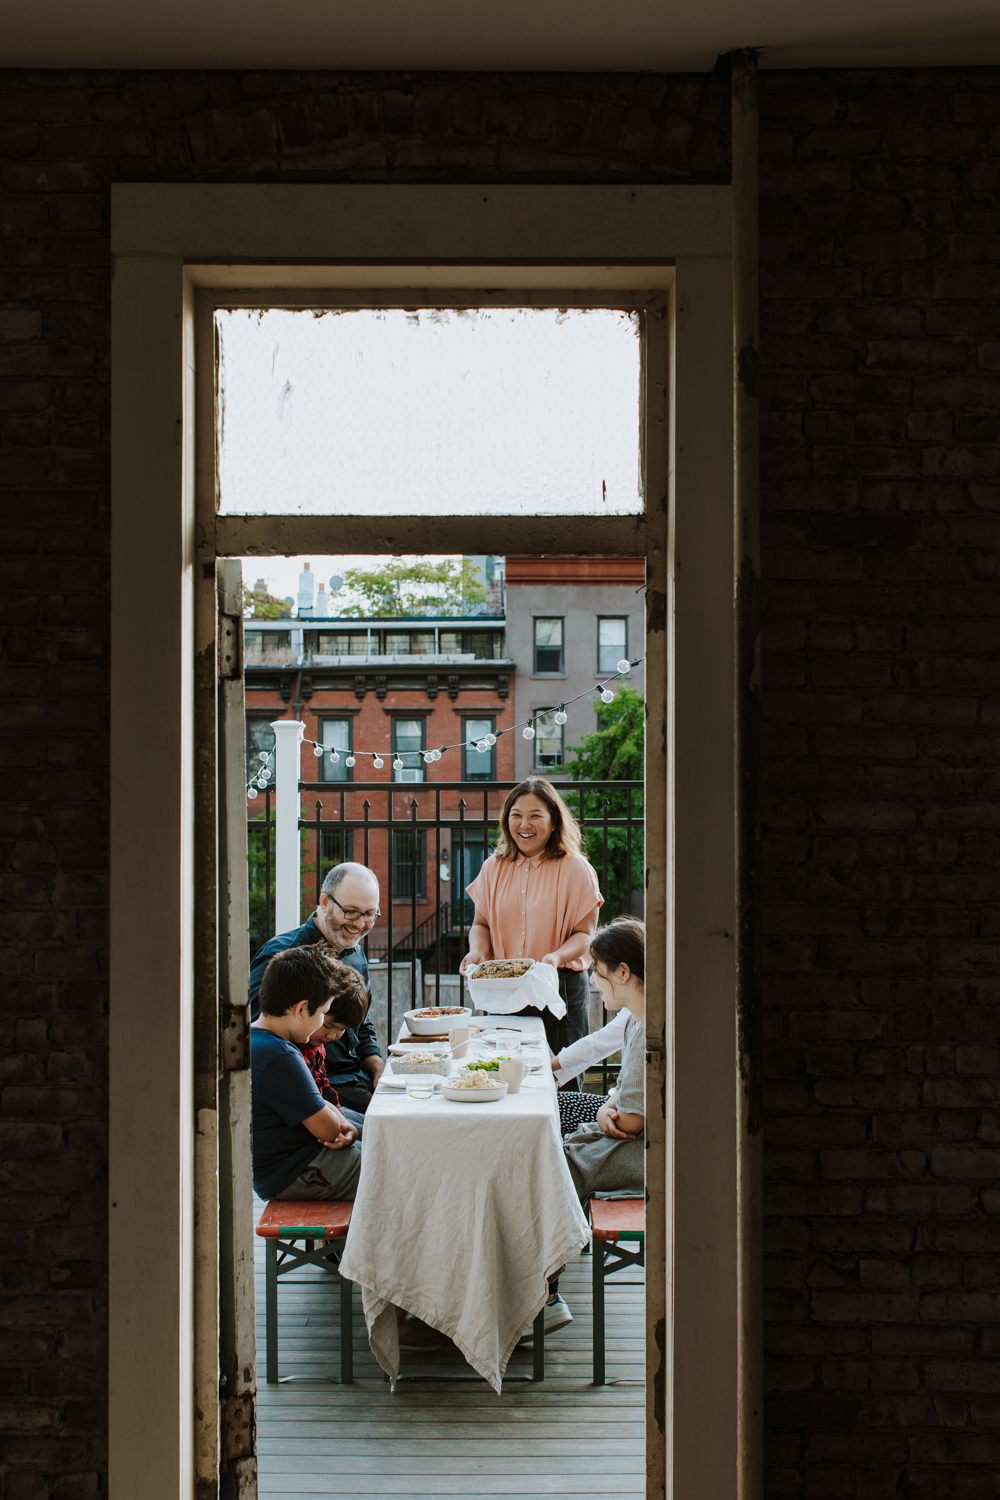 hetty mckinnon and family havng dinner on their patio